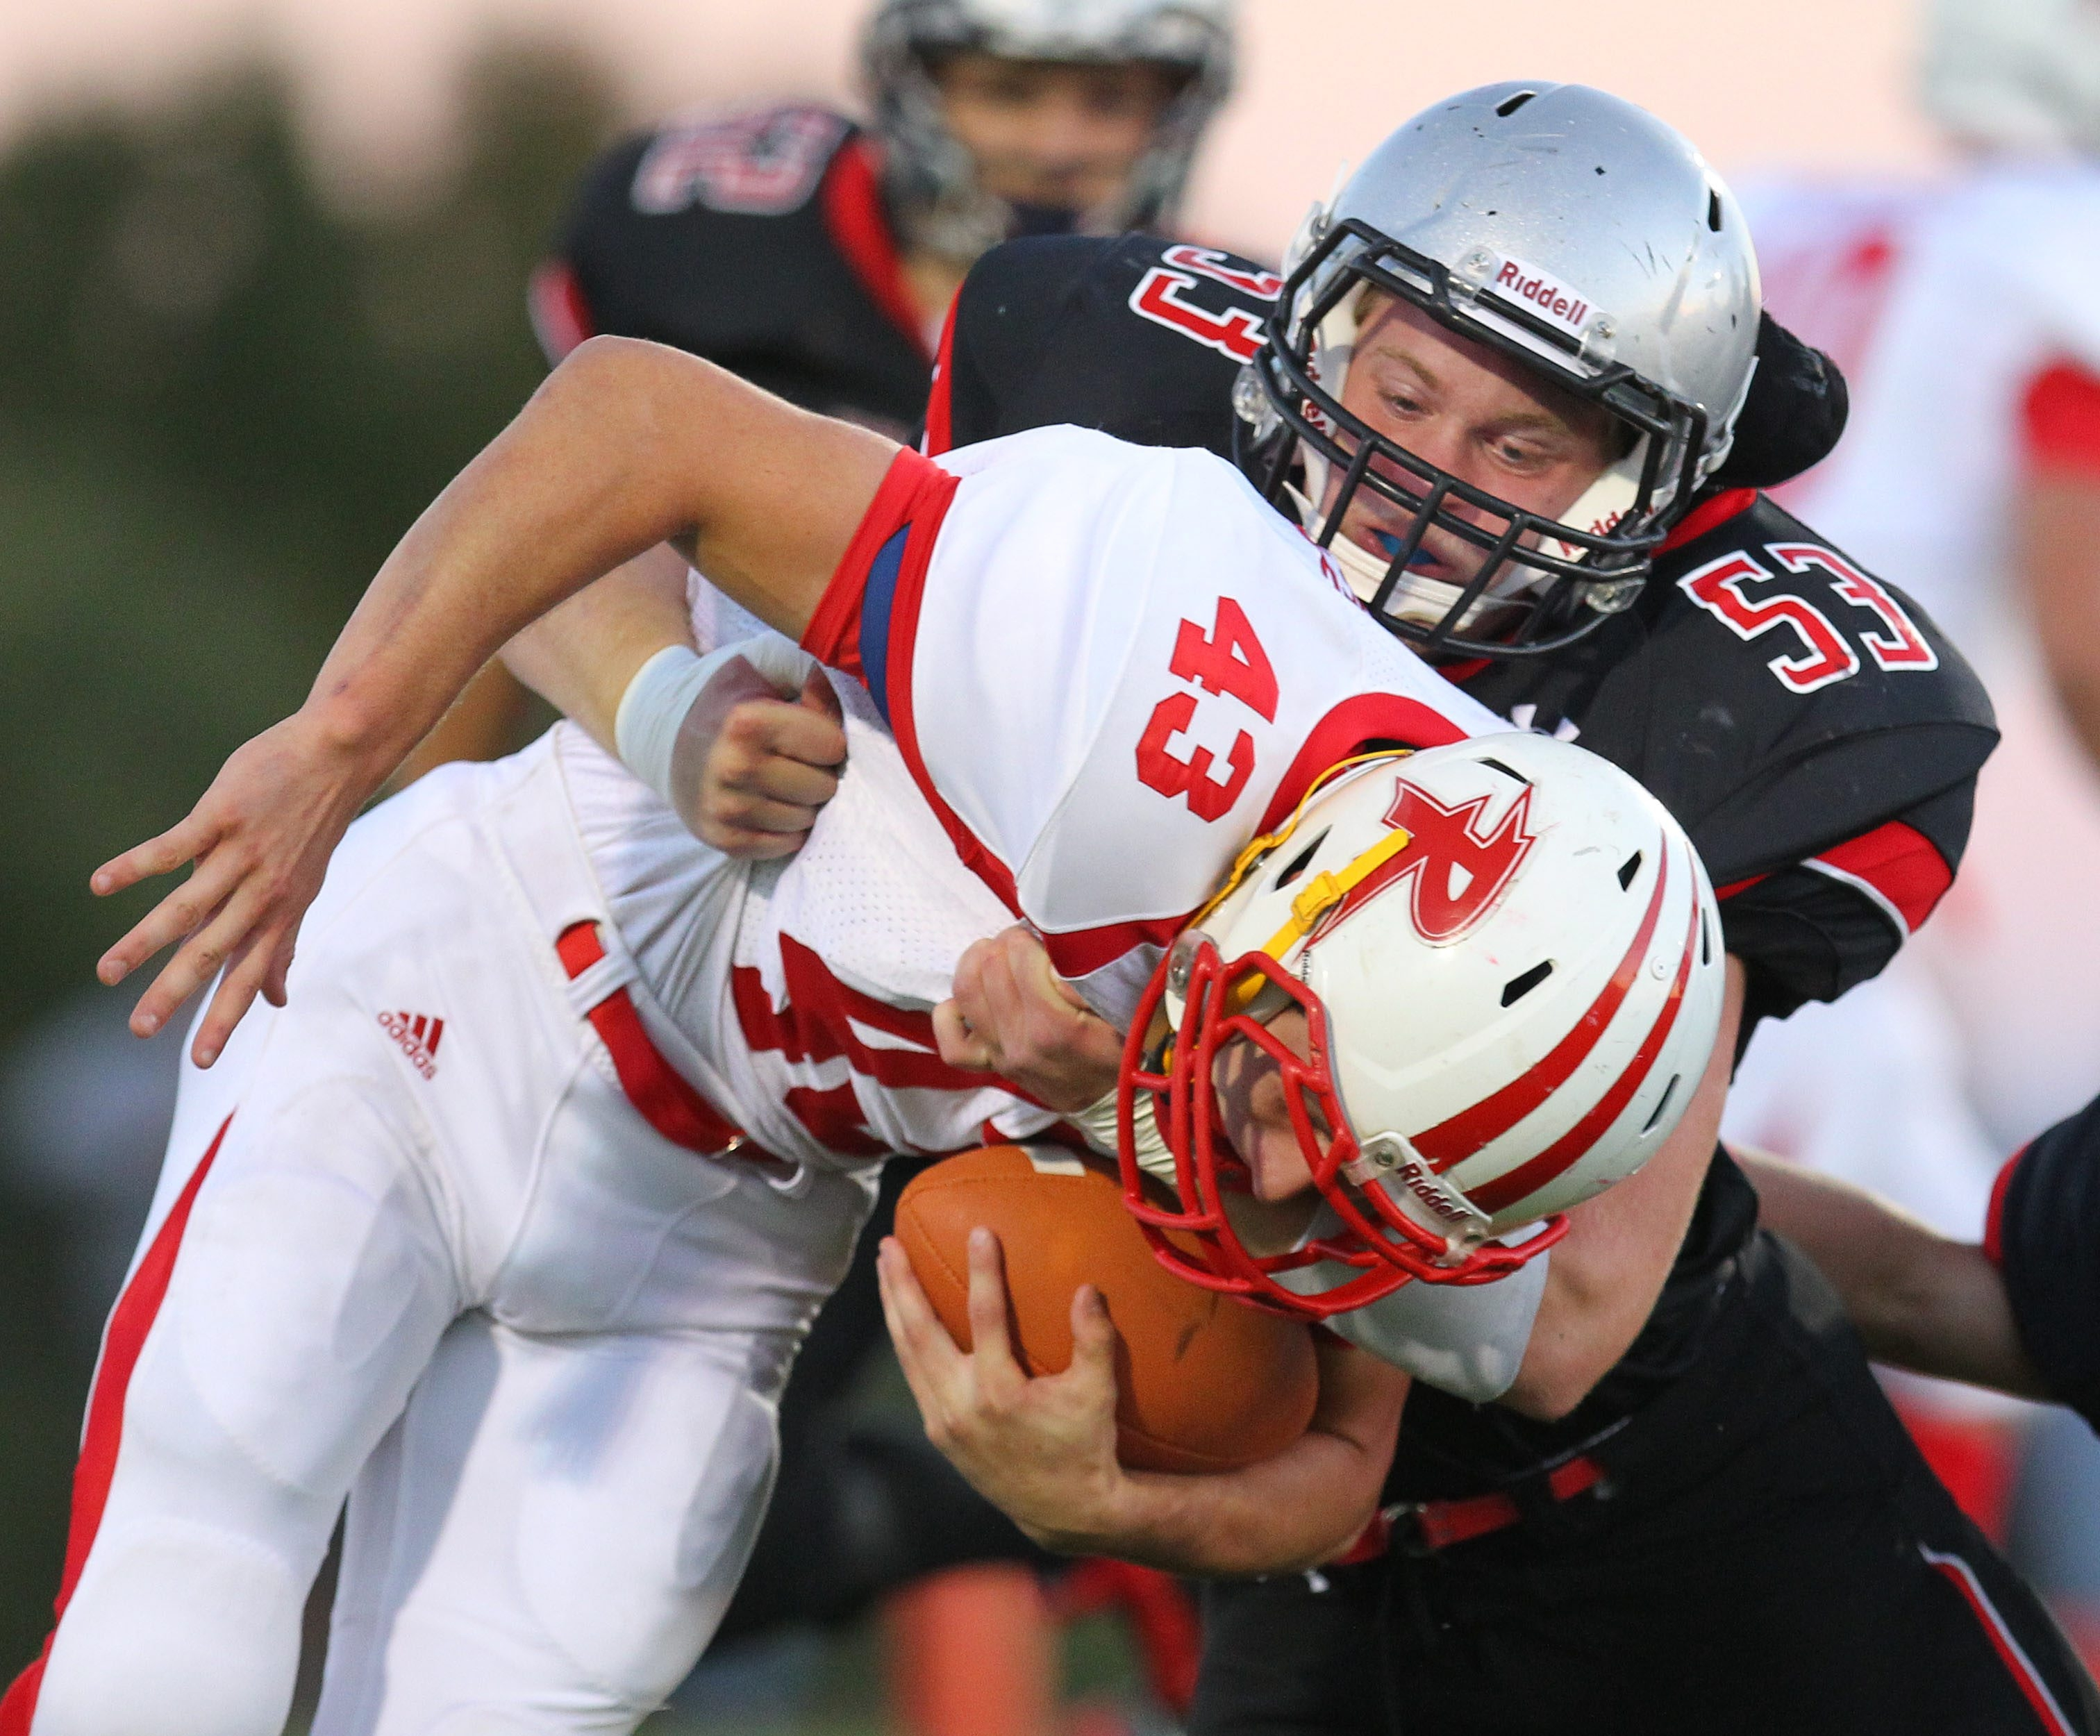 Maple Grove/Chautauqua Lake's Chandler Baker tackles Randolph's Chris Doubek during Randolph's 35-7 road victory in Week Four.